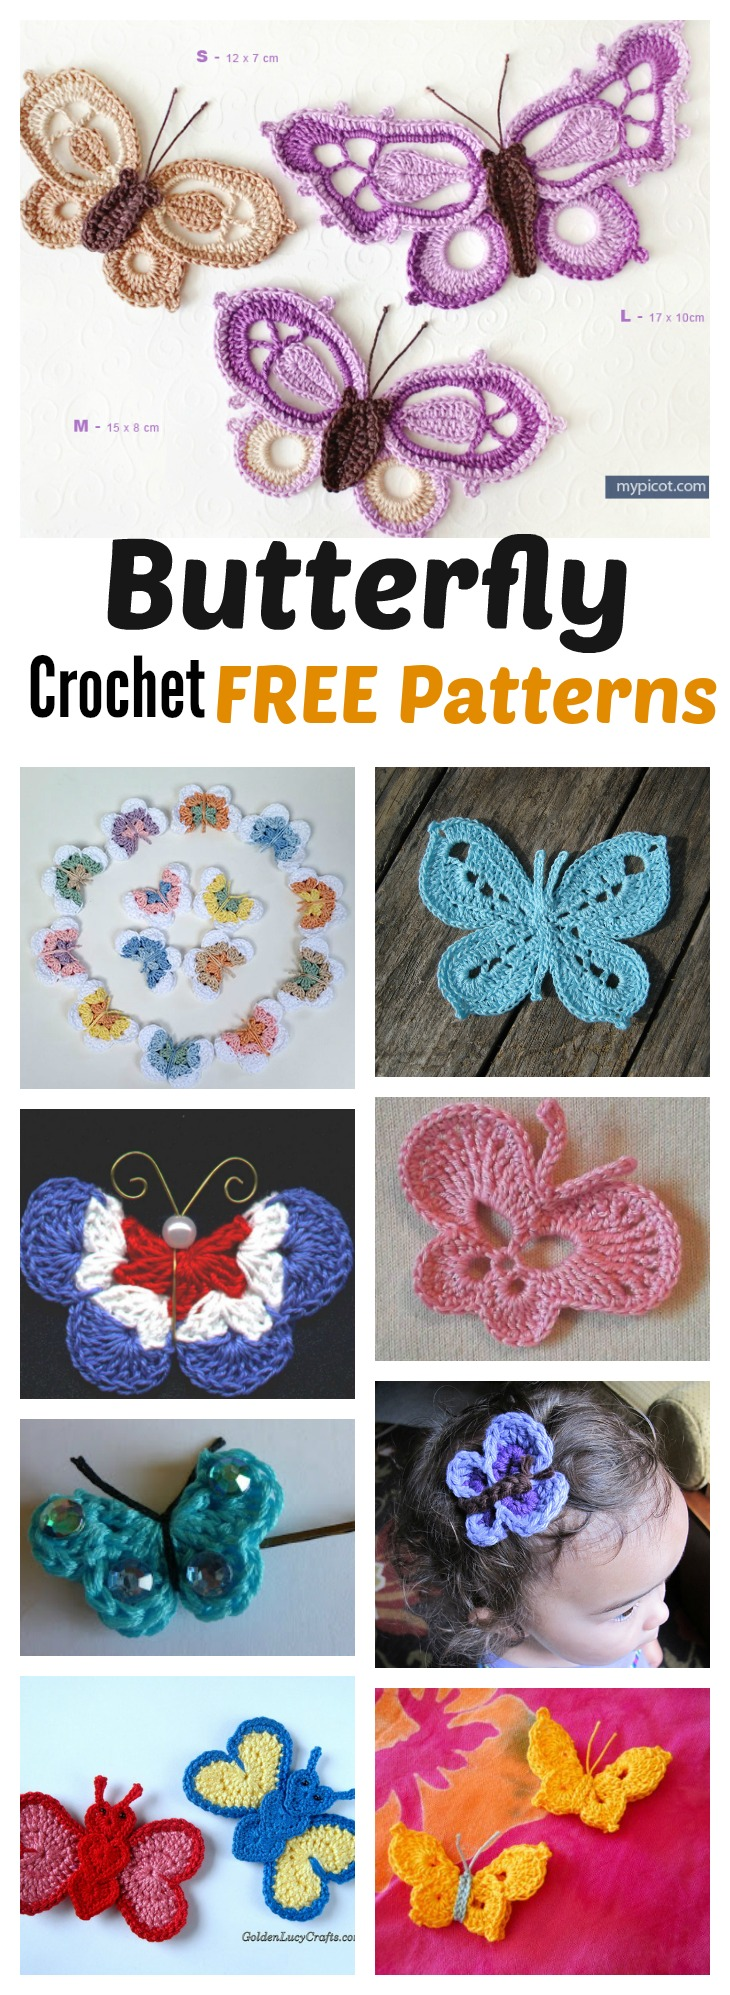 Crochet Butterfly Free Patterns You Should Try For Your